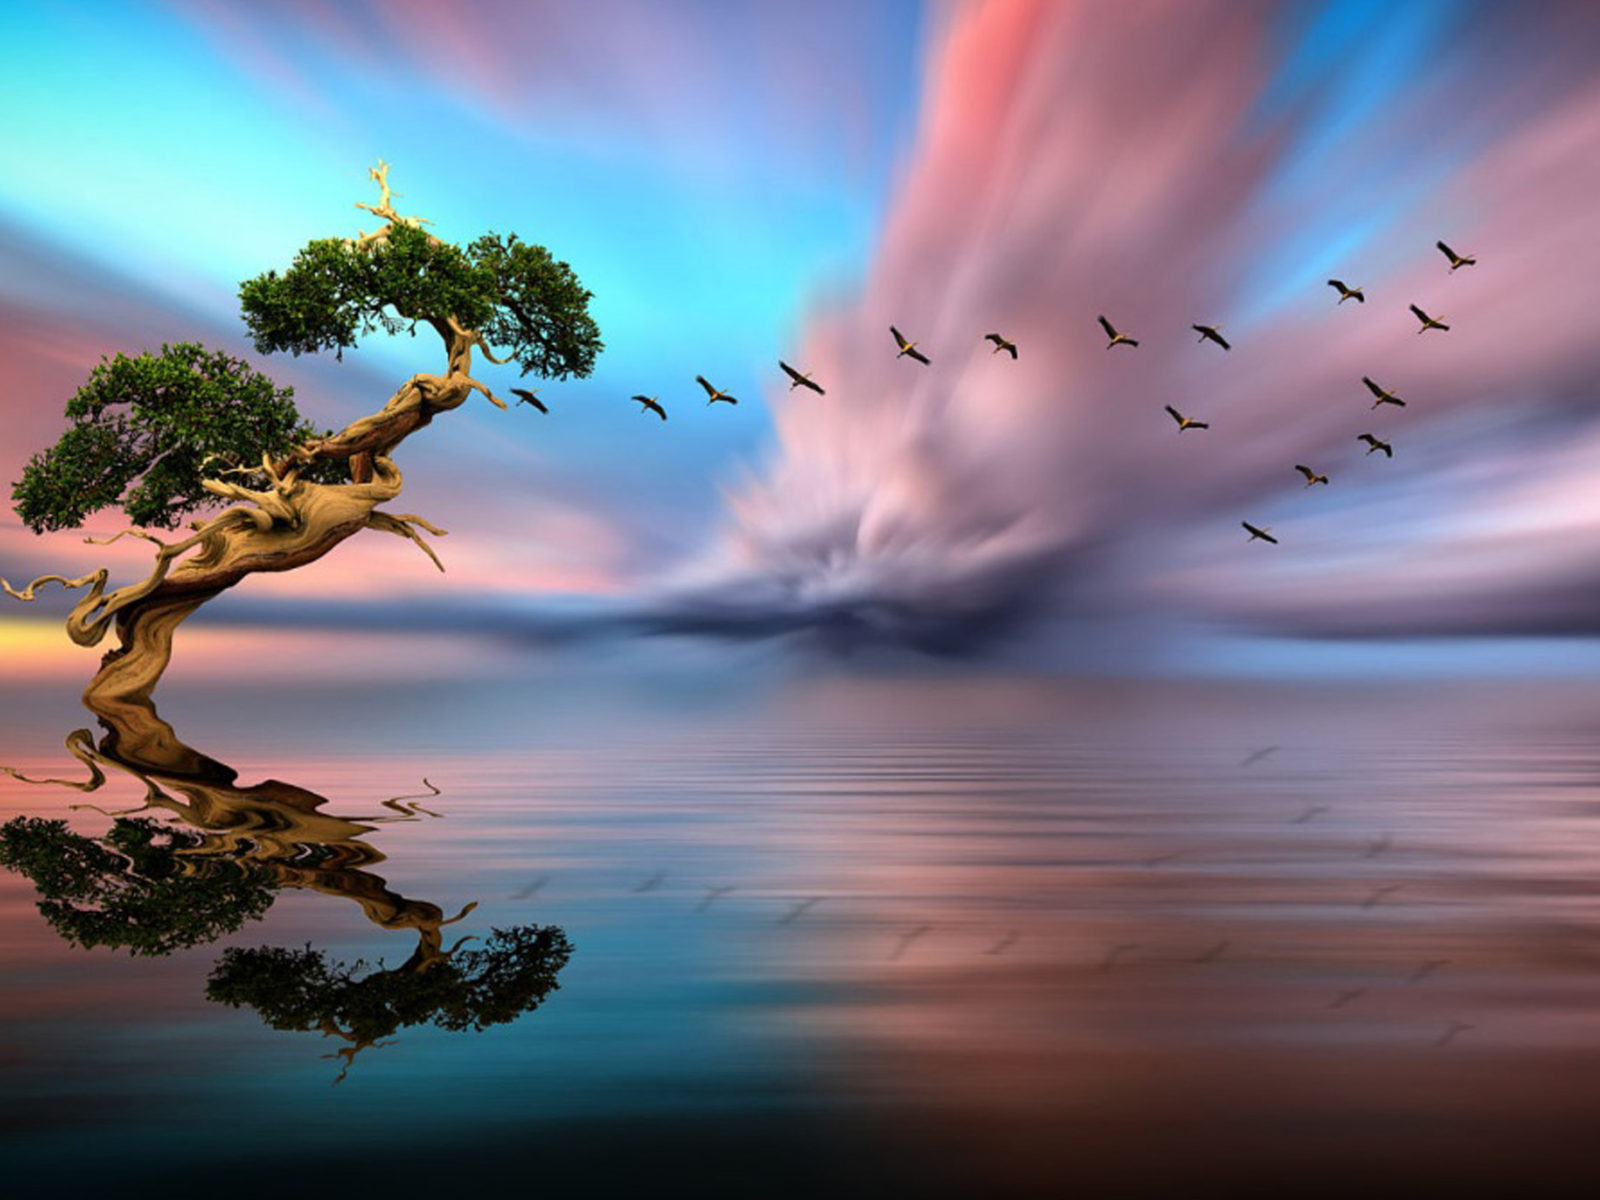 Pink Full Hd Wallpaper Solitary Tree Lake Birds In Flight Red Cloud Sunset